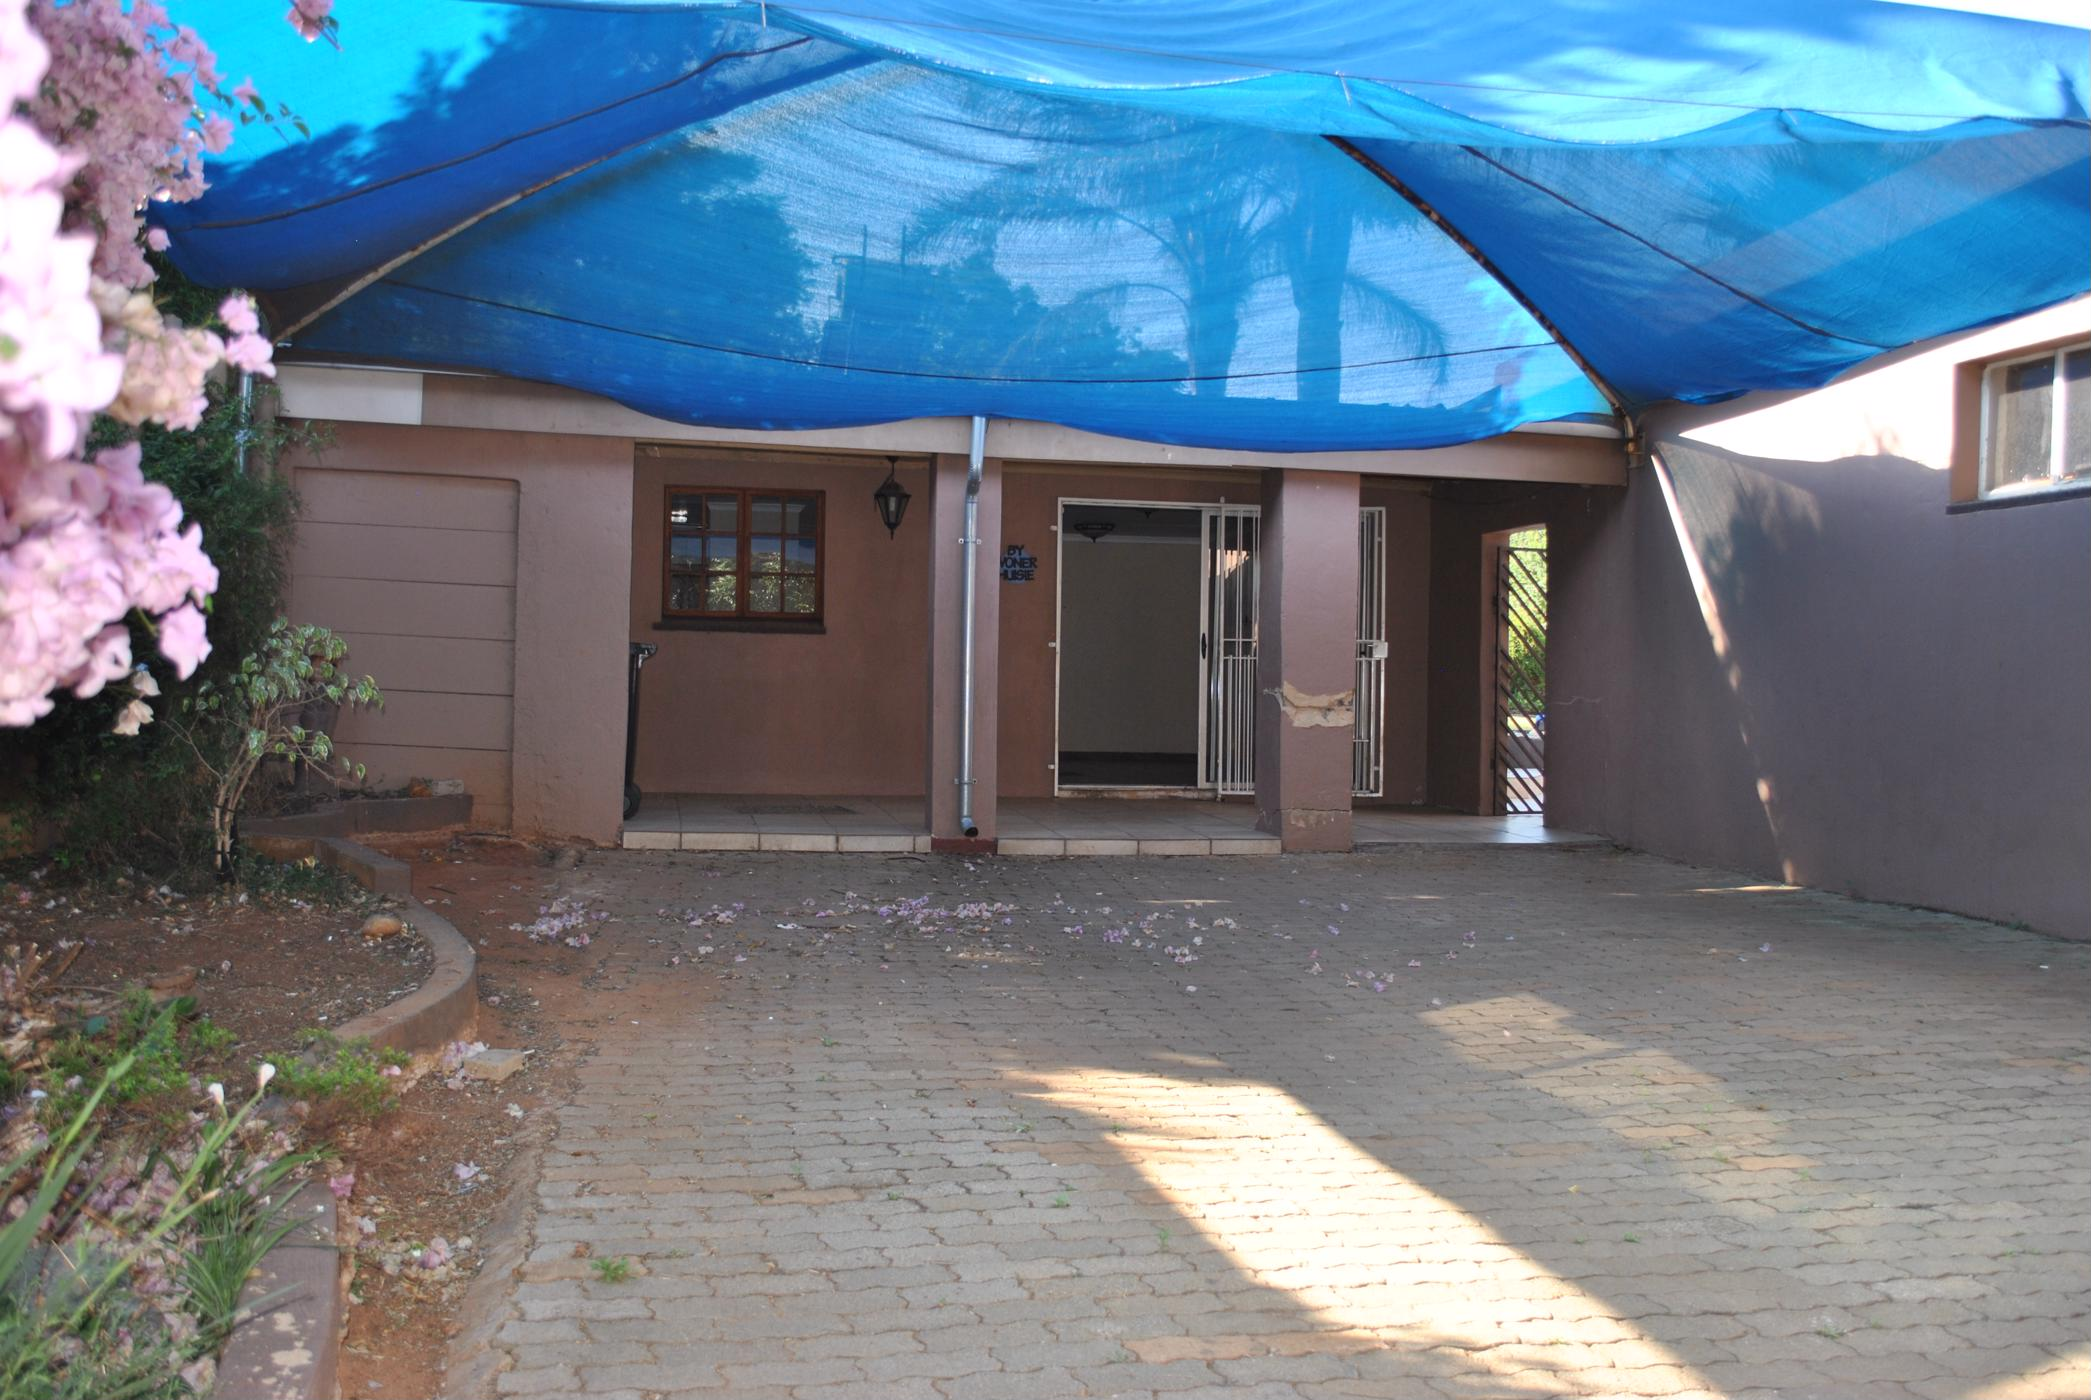 https://listing.pamgolding.co.za/images/properties/201811/1125642/H/1125642_H_1.jpg